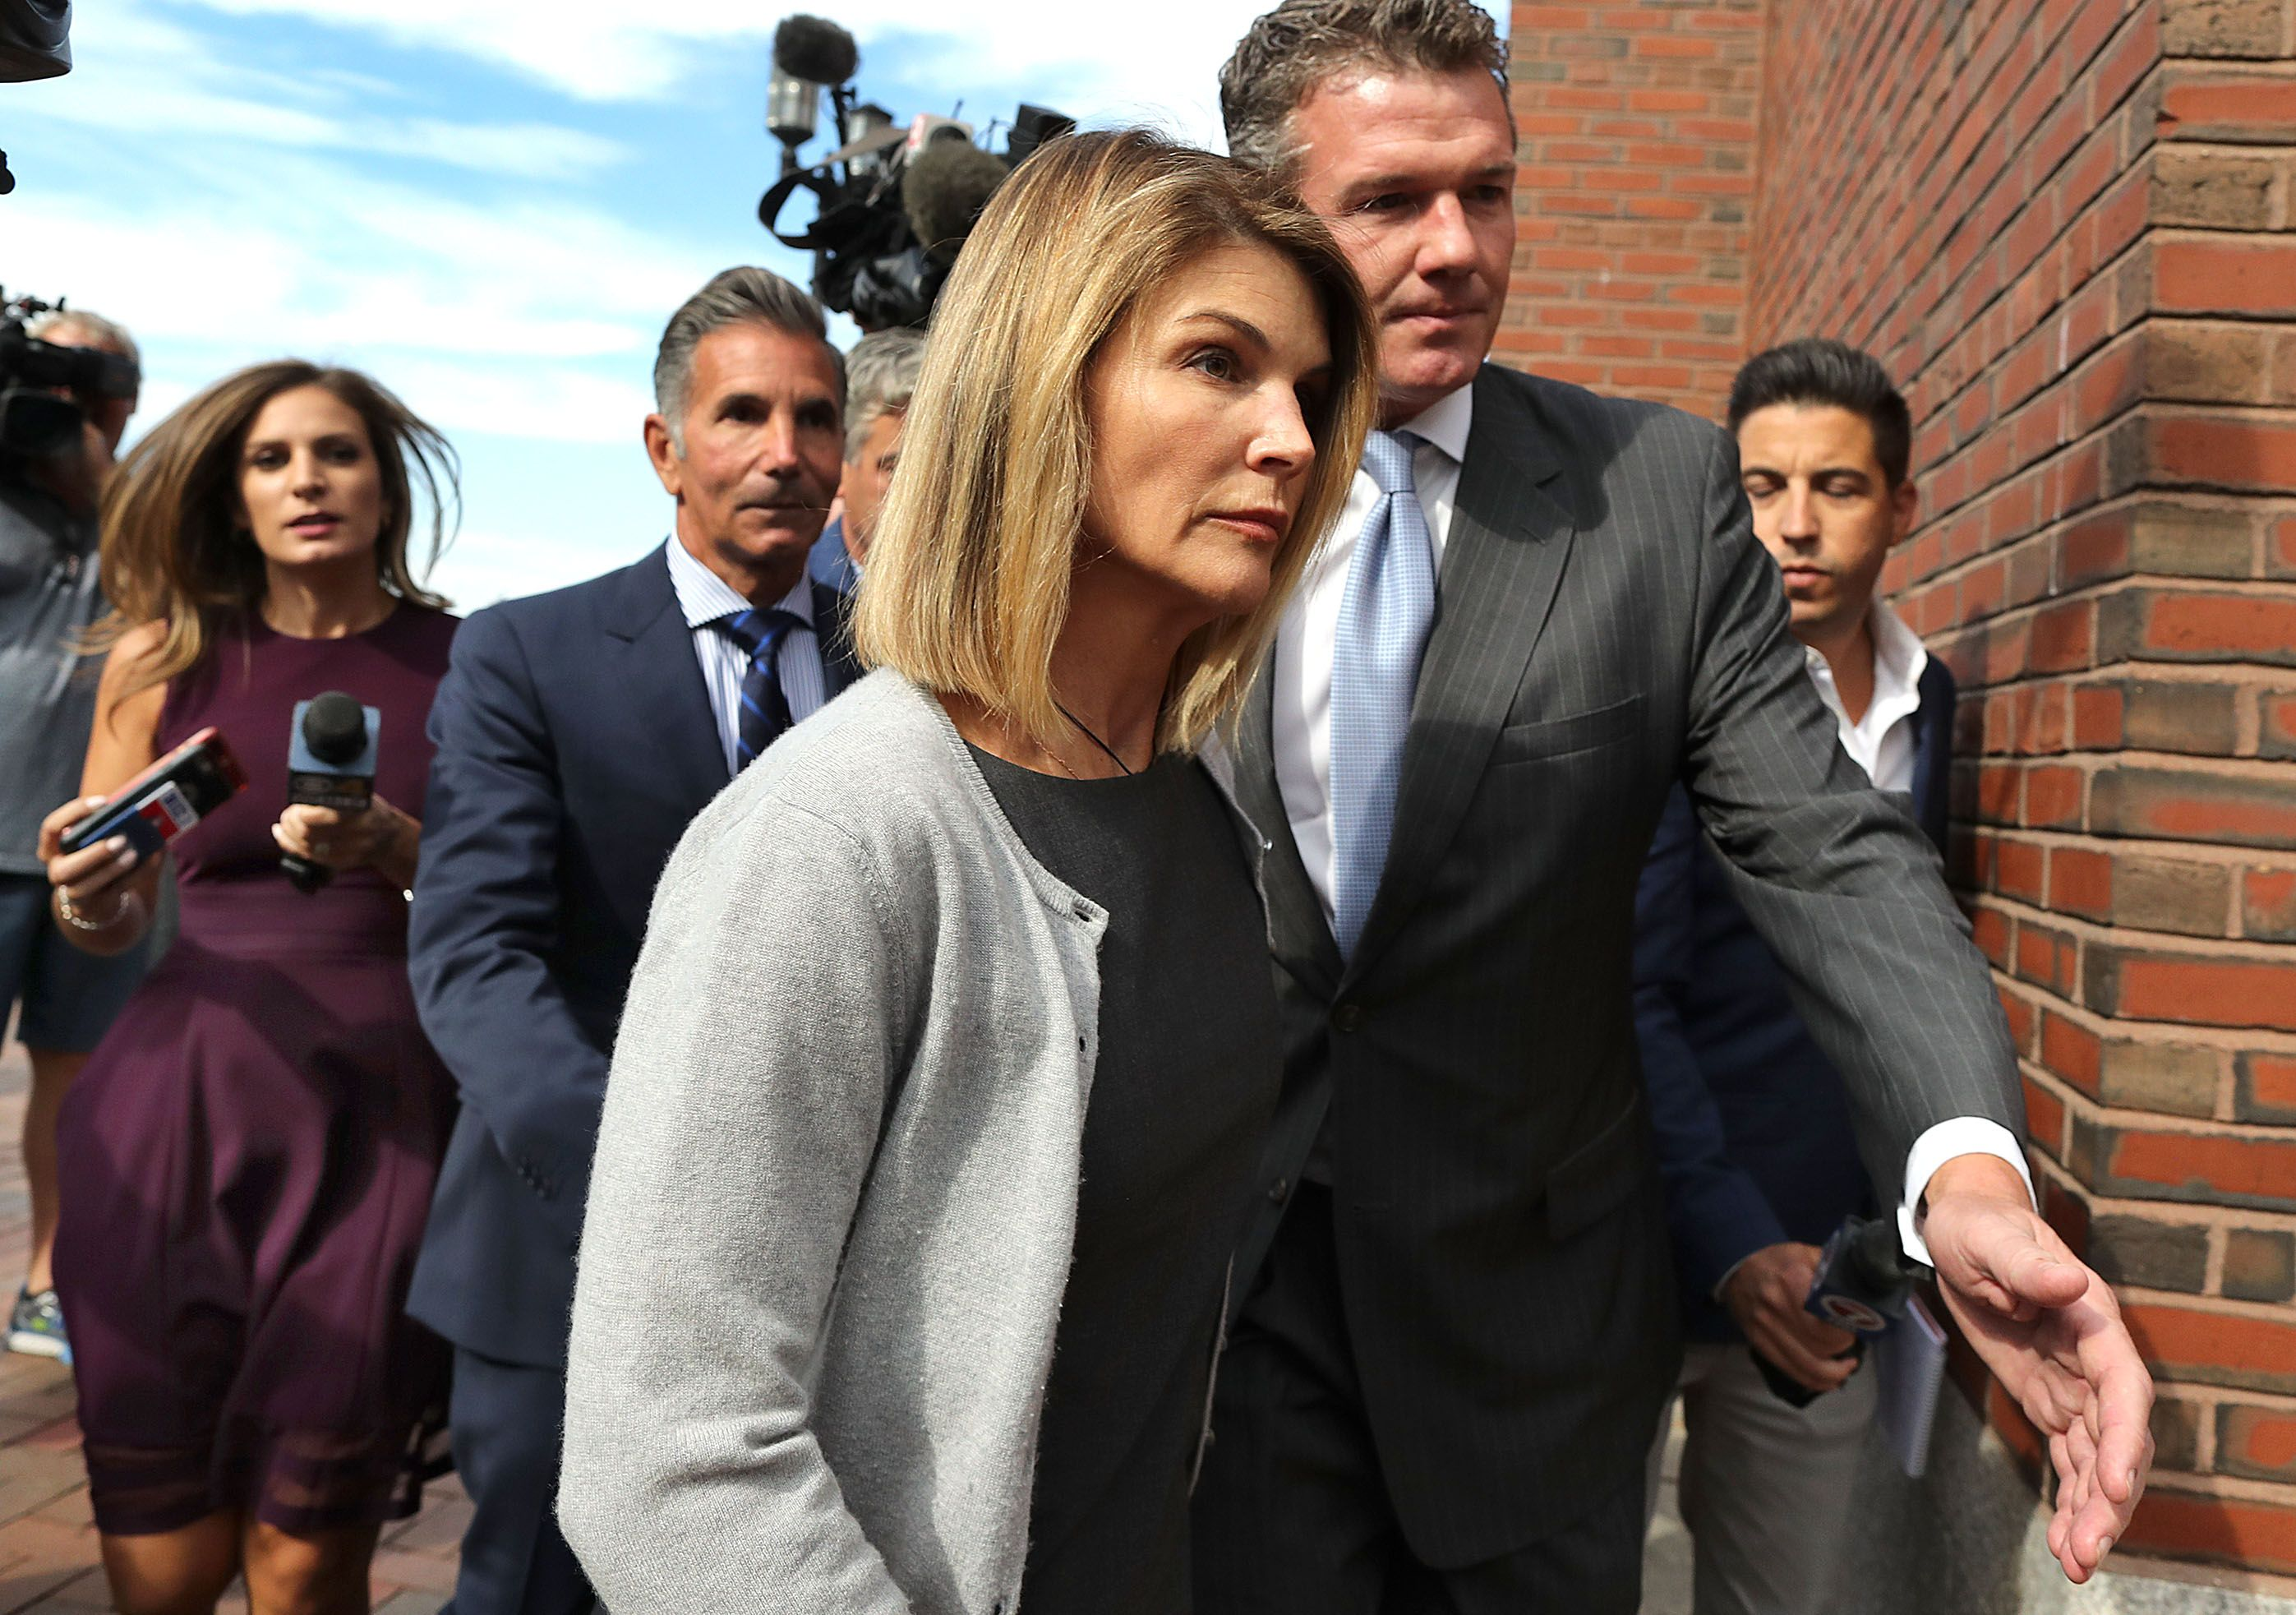 Lori Loughlin Was Just Charged With Bribery in the College Admissions Cheating Scandal